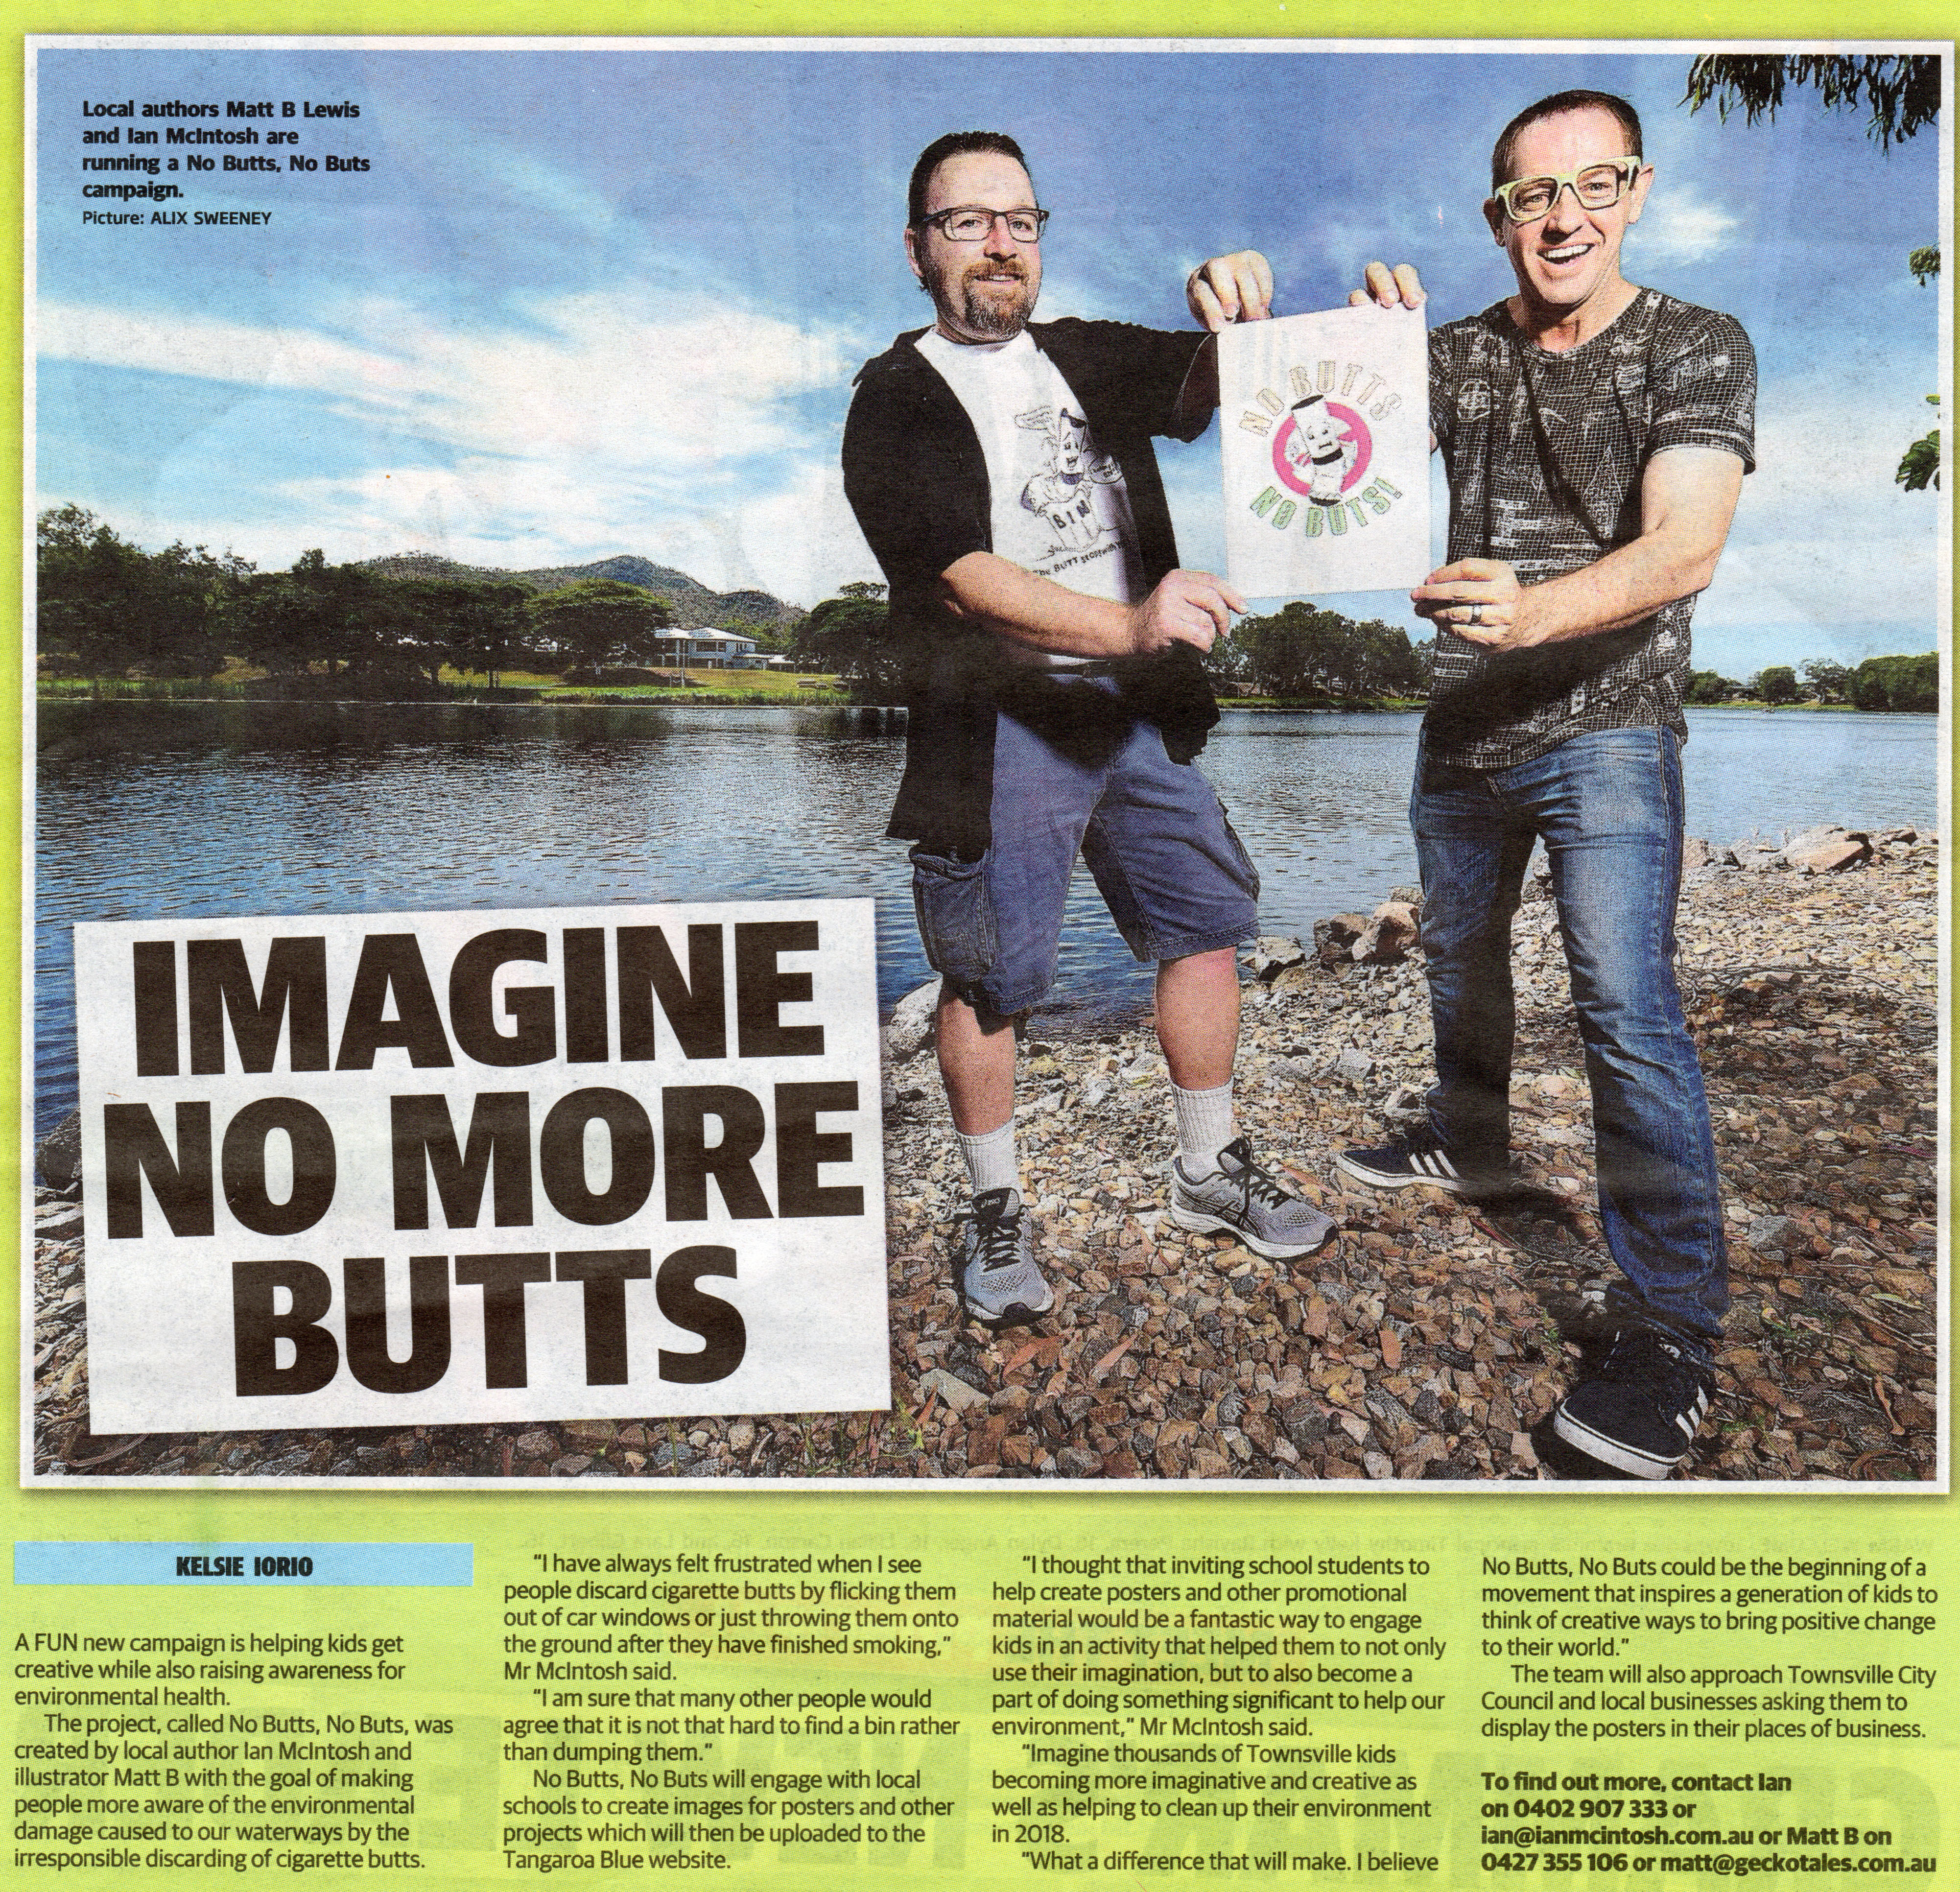 No Butts No Buts campaign